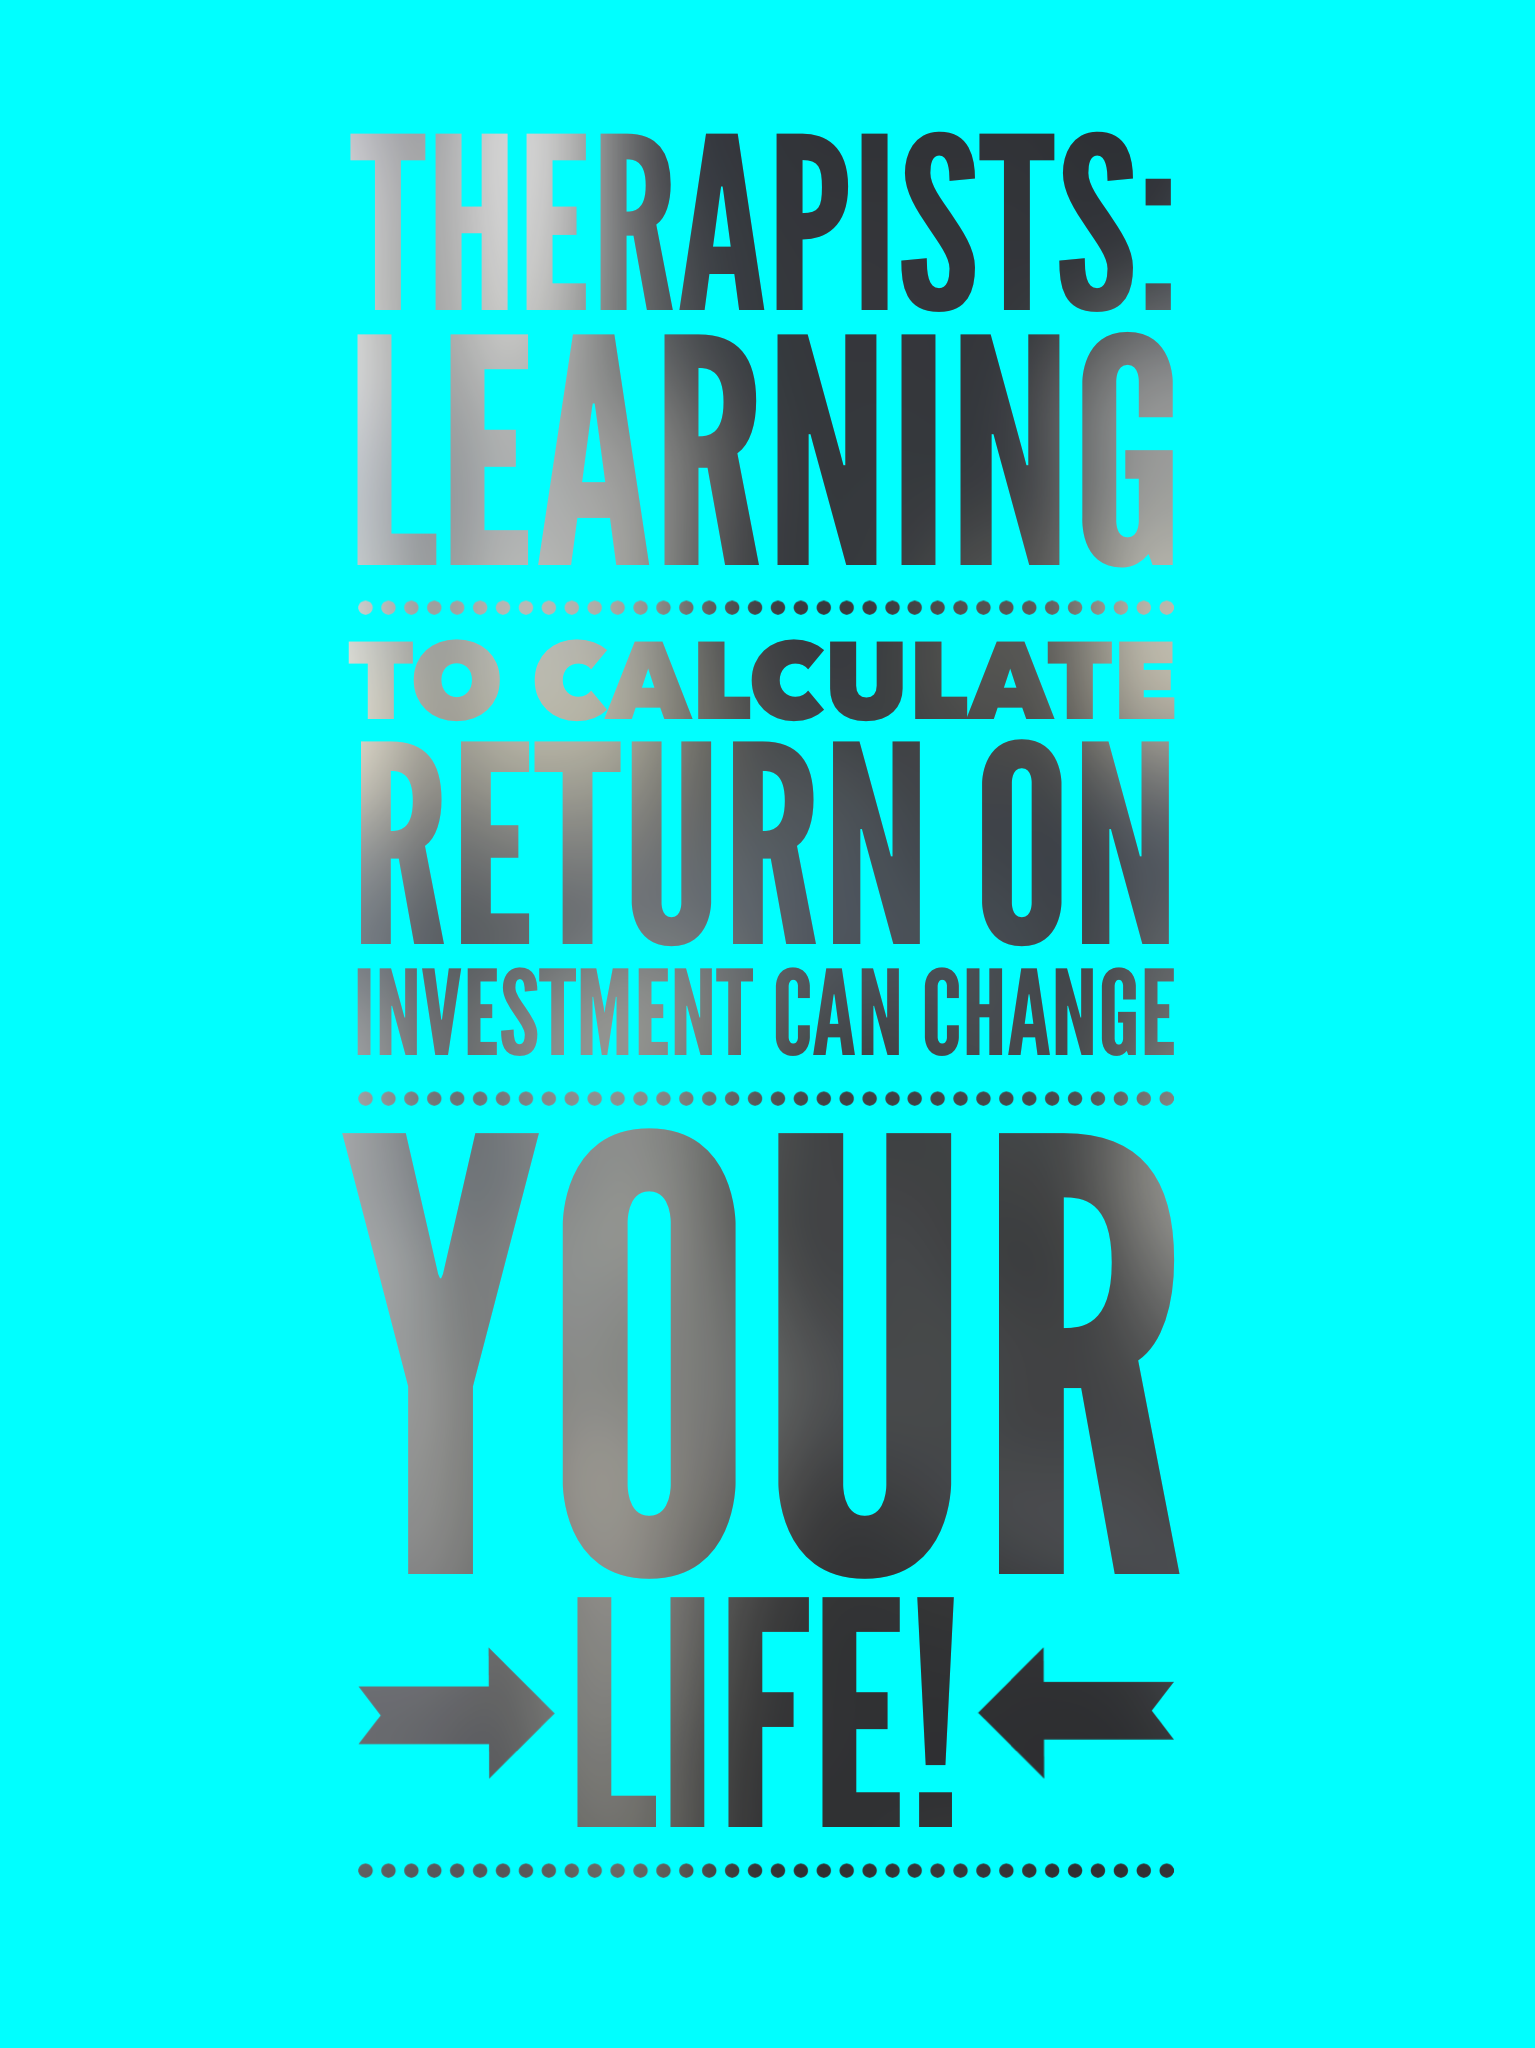 Return on Investment for Therapists